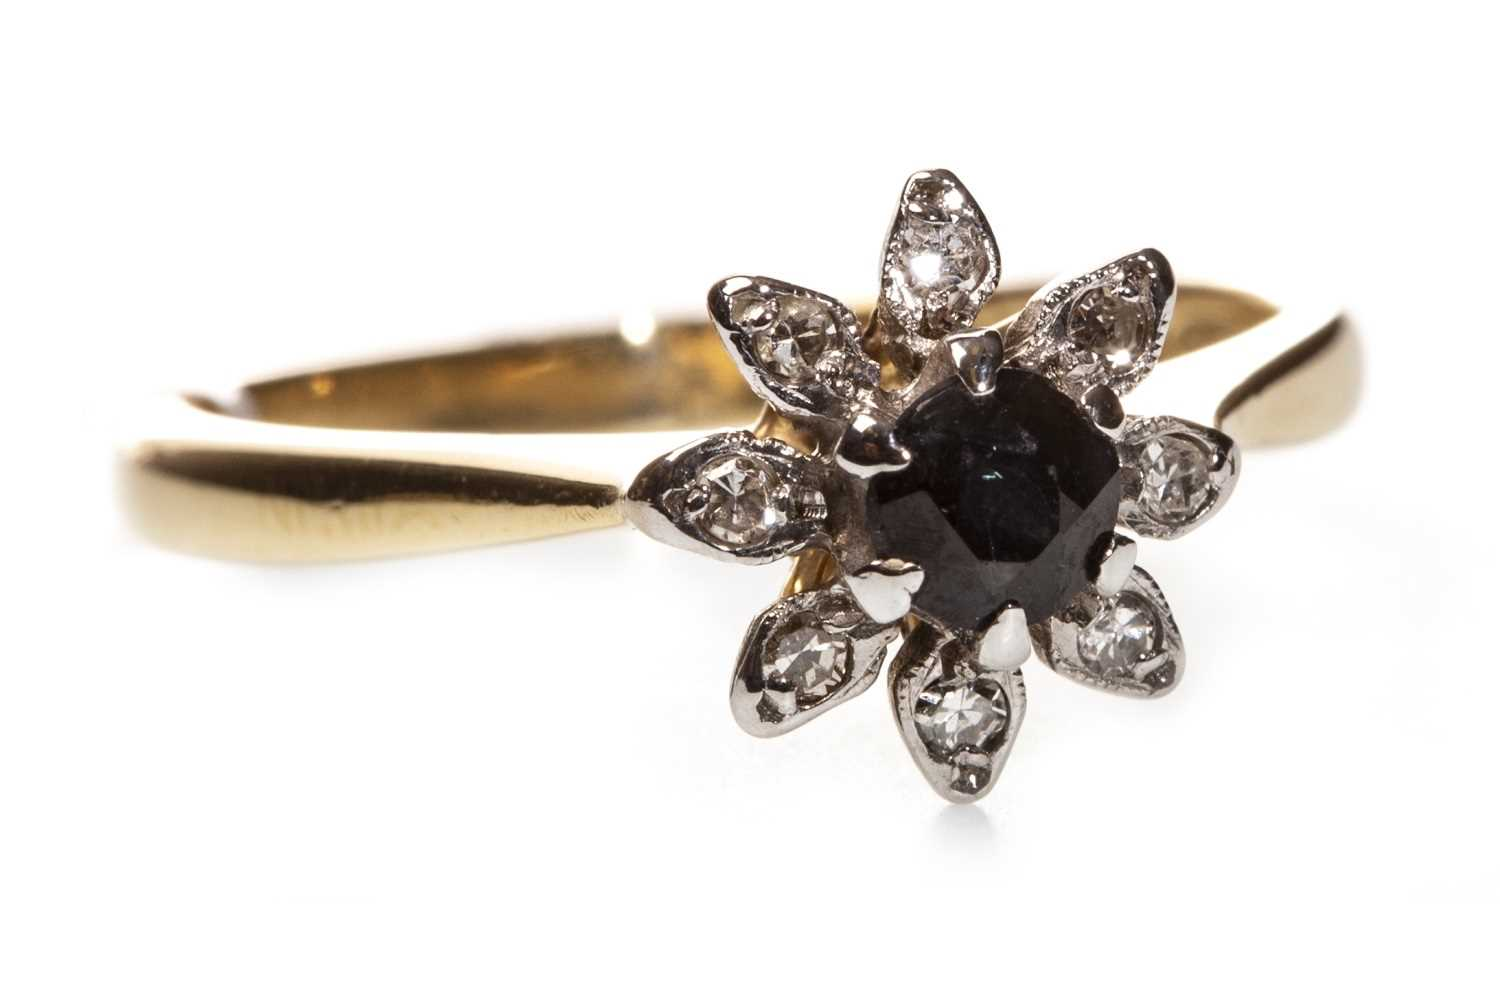 Lot 112 - A BLUE GEM AND DIAMOND RING